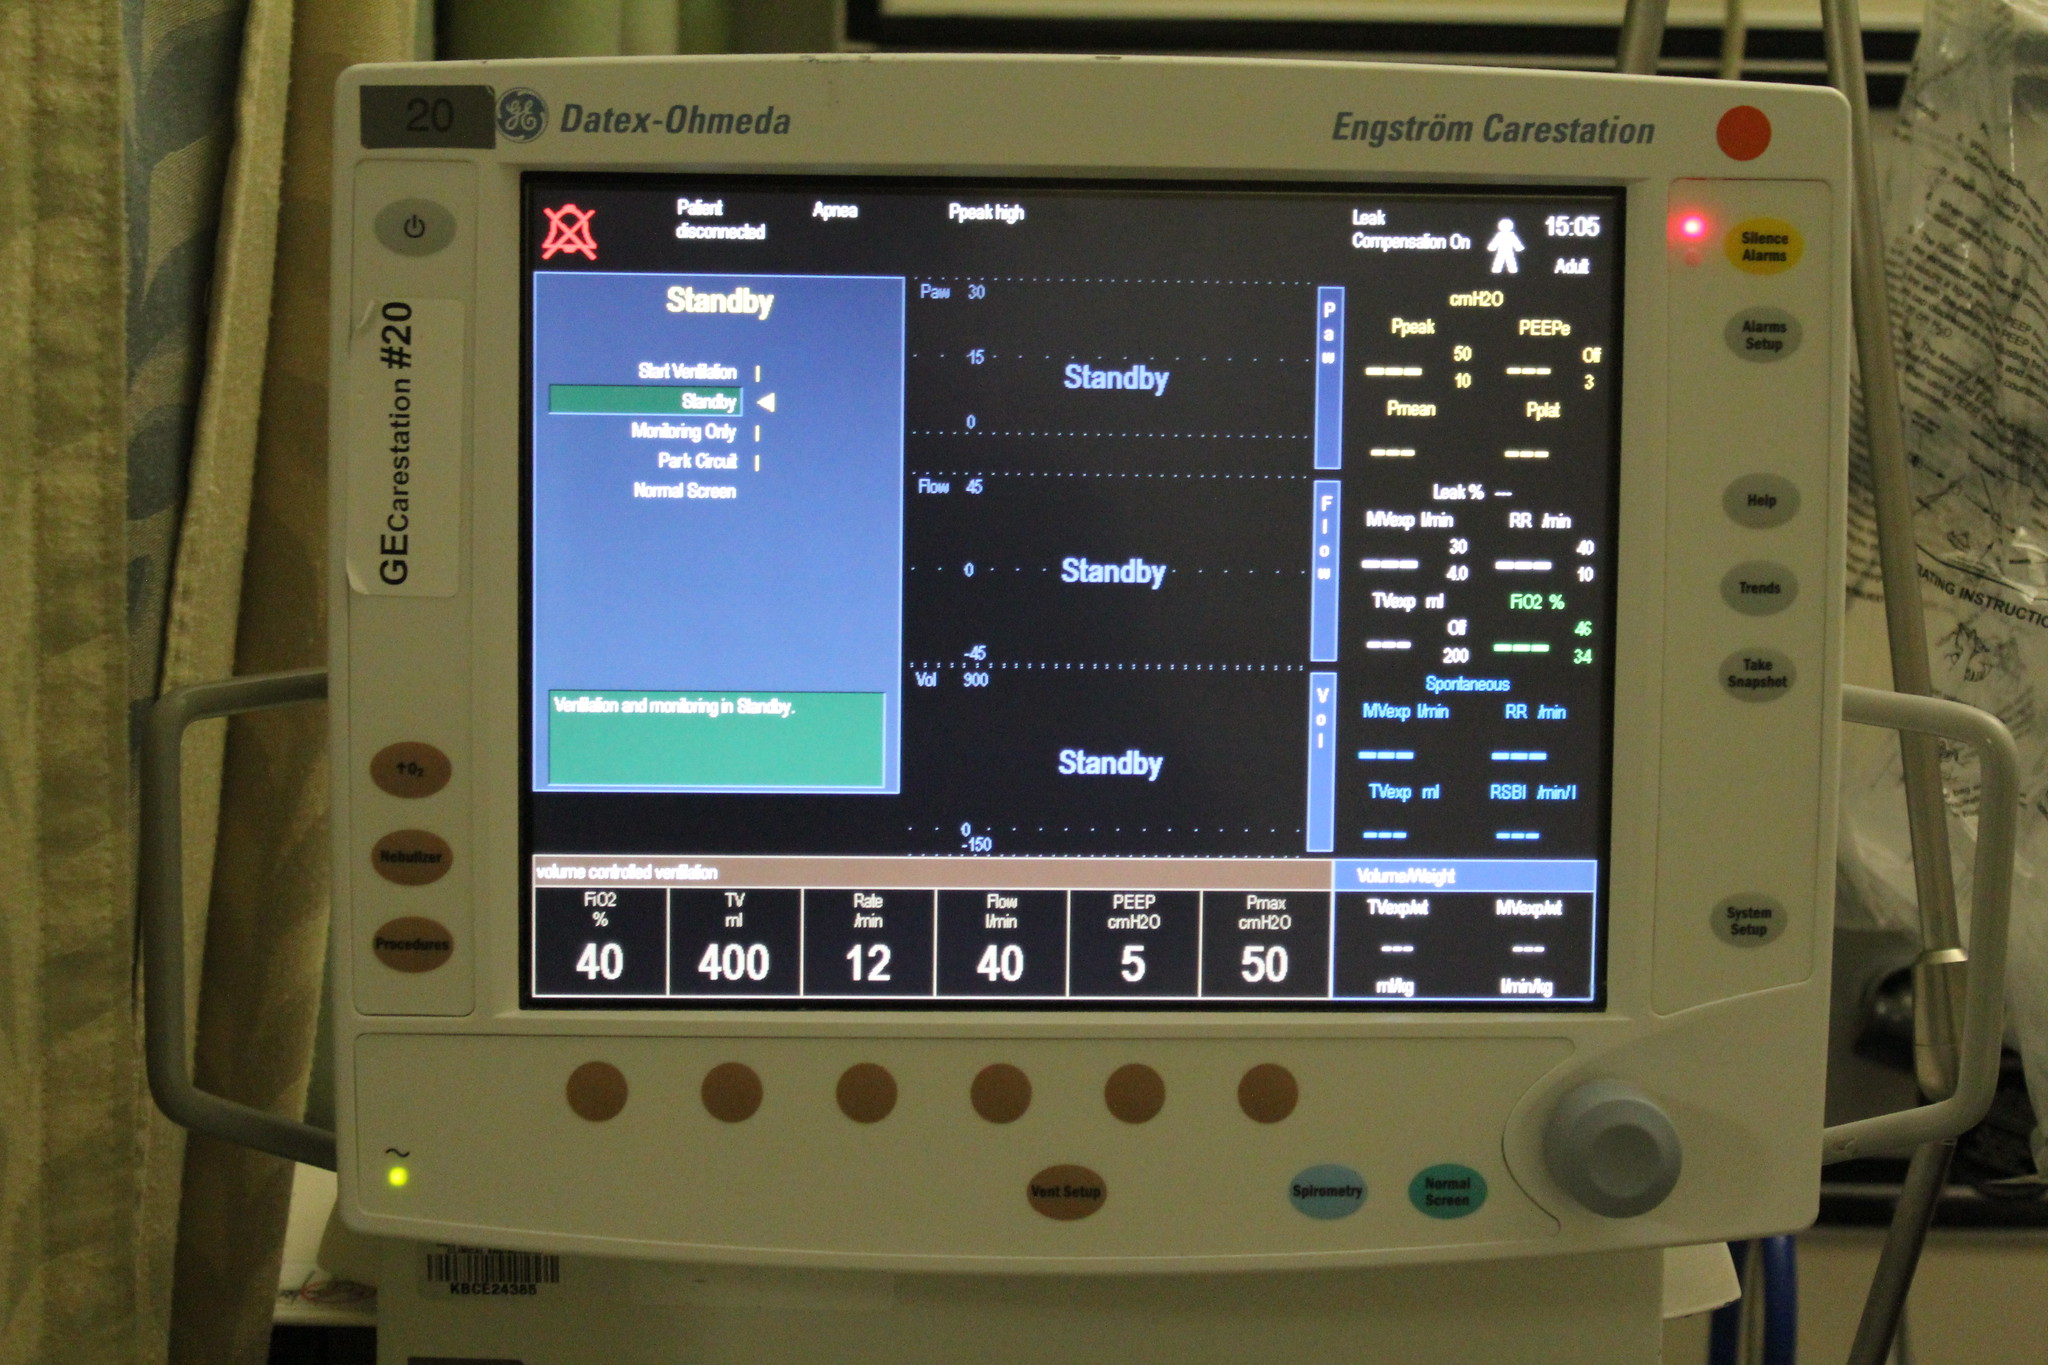 Ventilator screen